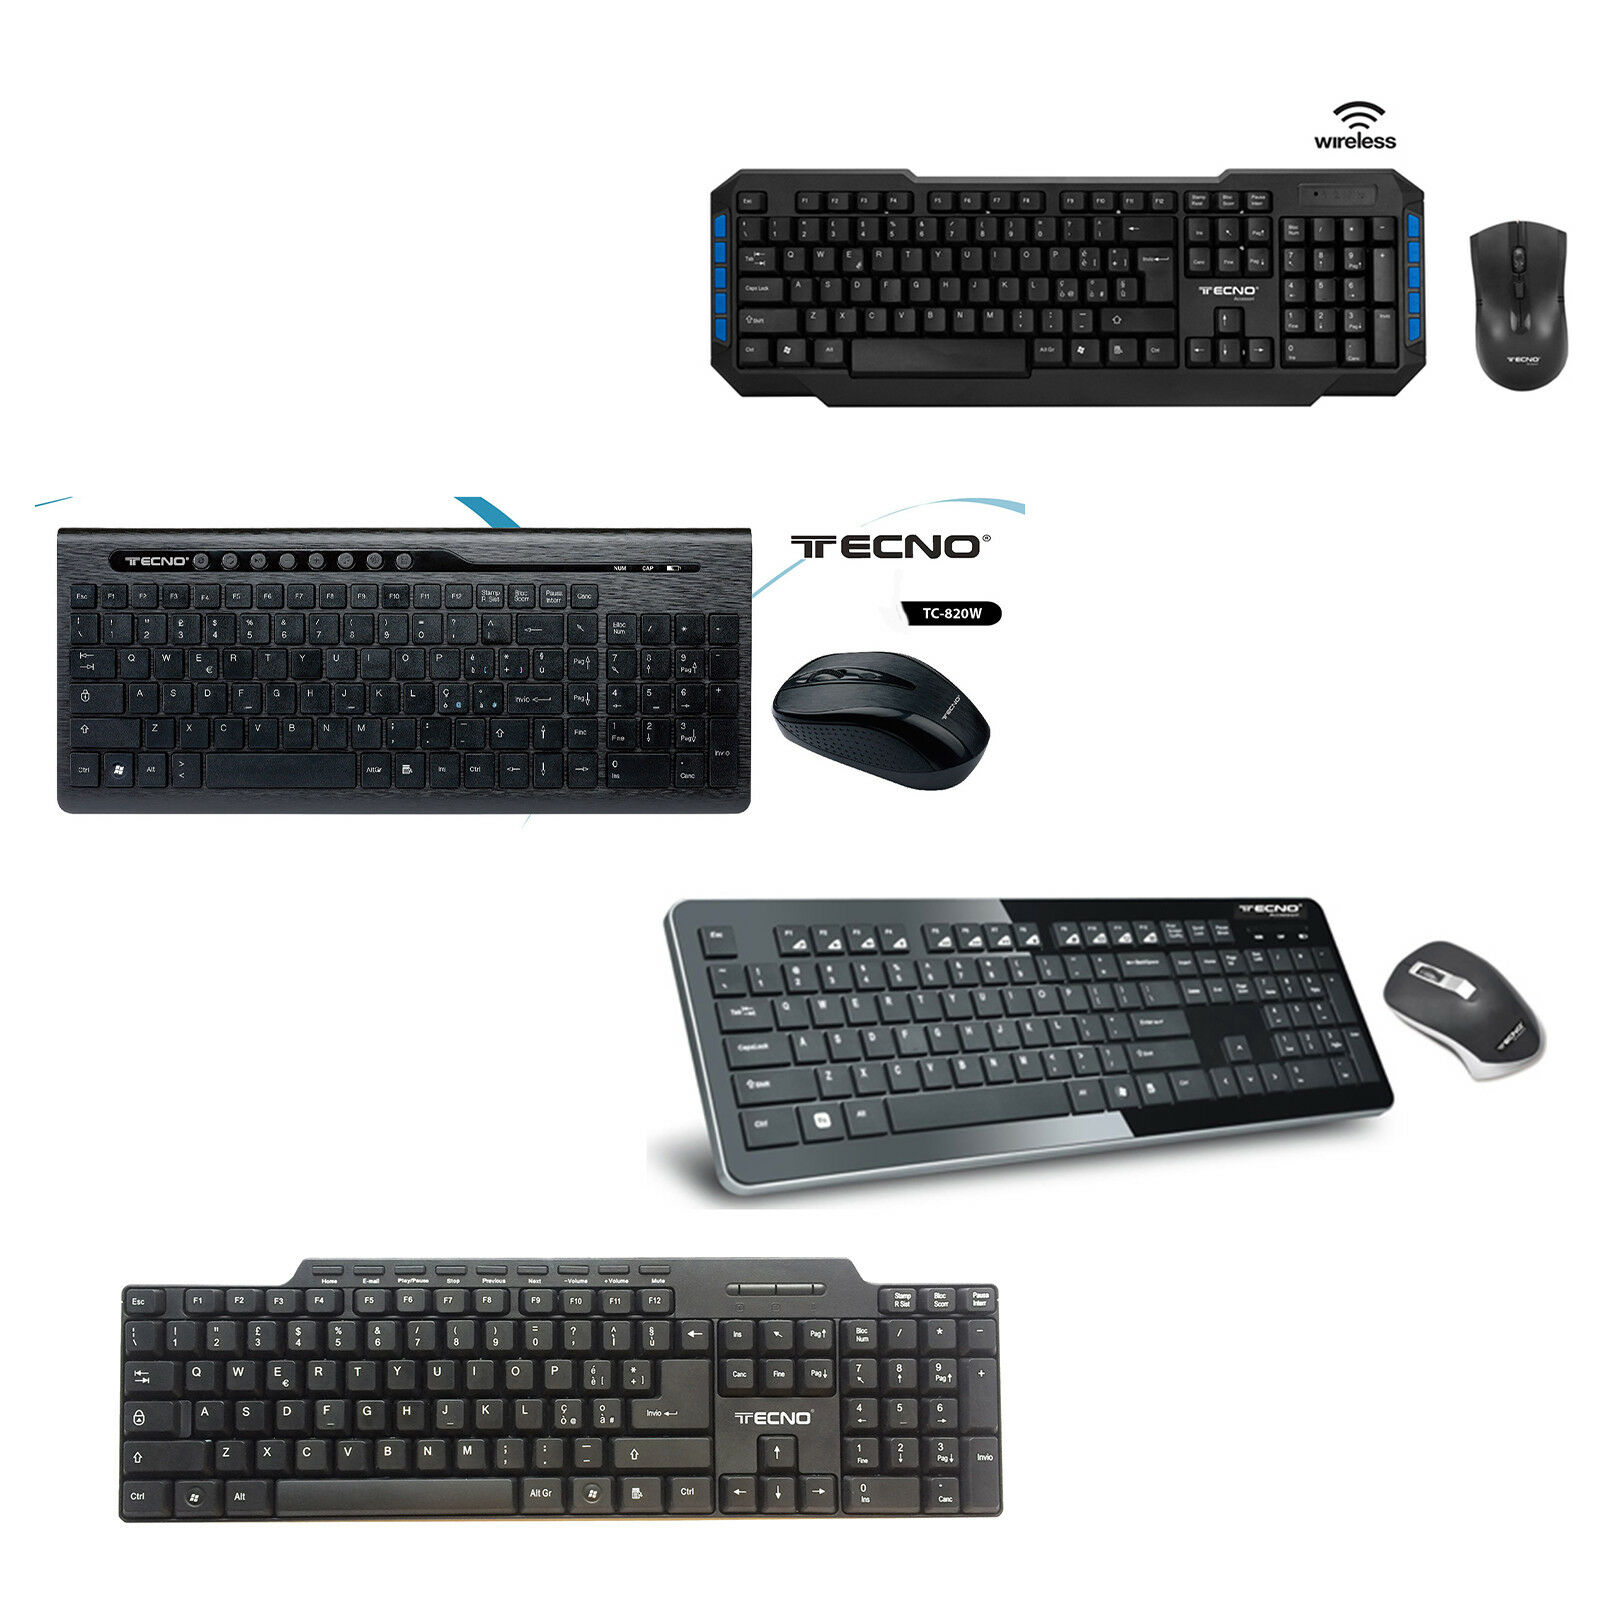 KIT TASTIERA MOUSE KEYBOARD SENZA FILI WIFI WIRELESS CAVO USB PC DESKTOP TECNO